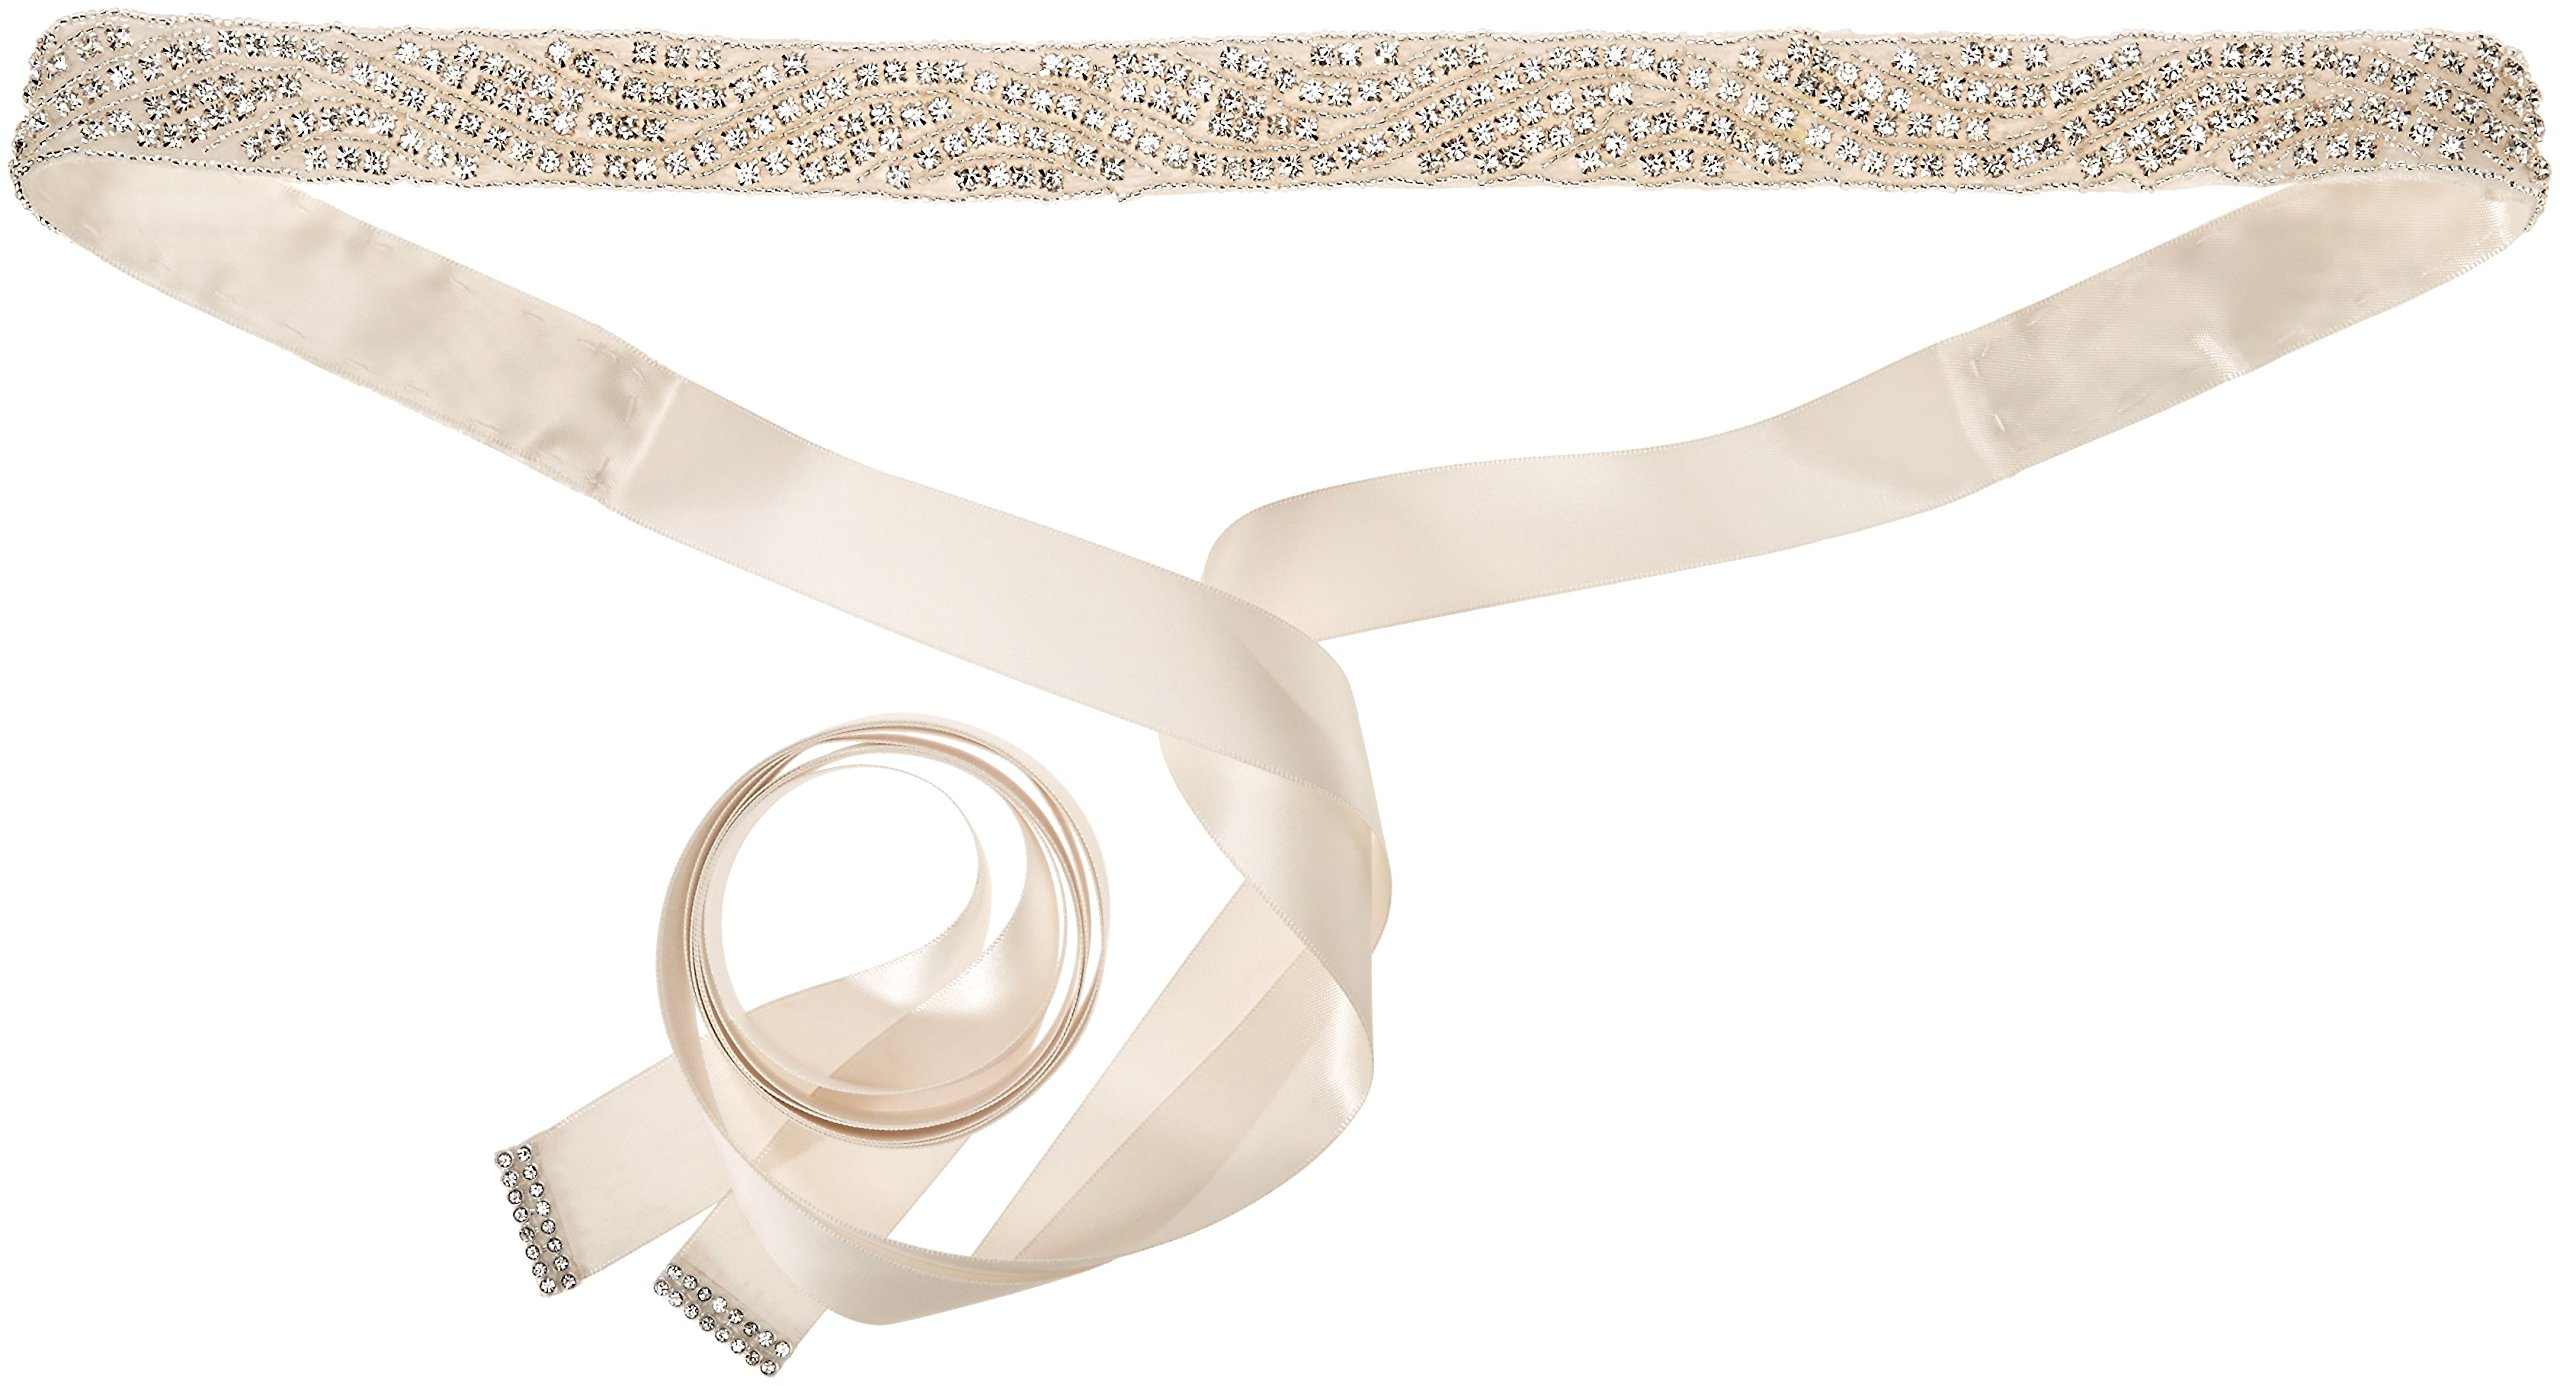 Nina Women's Pazely Art Deco Satin Bridal Belt, Ivory, One Size by Nina